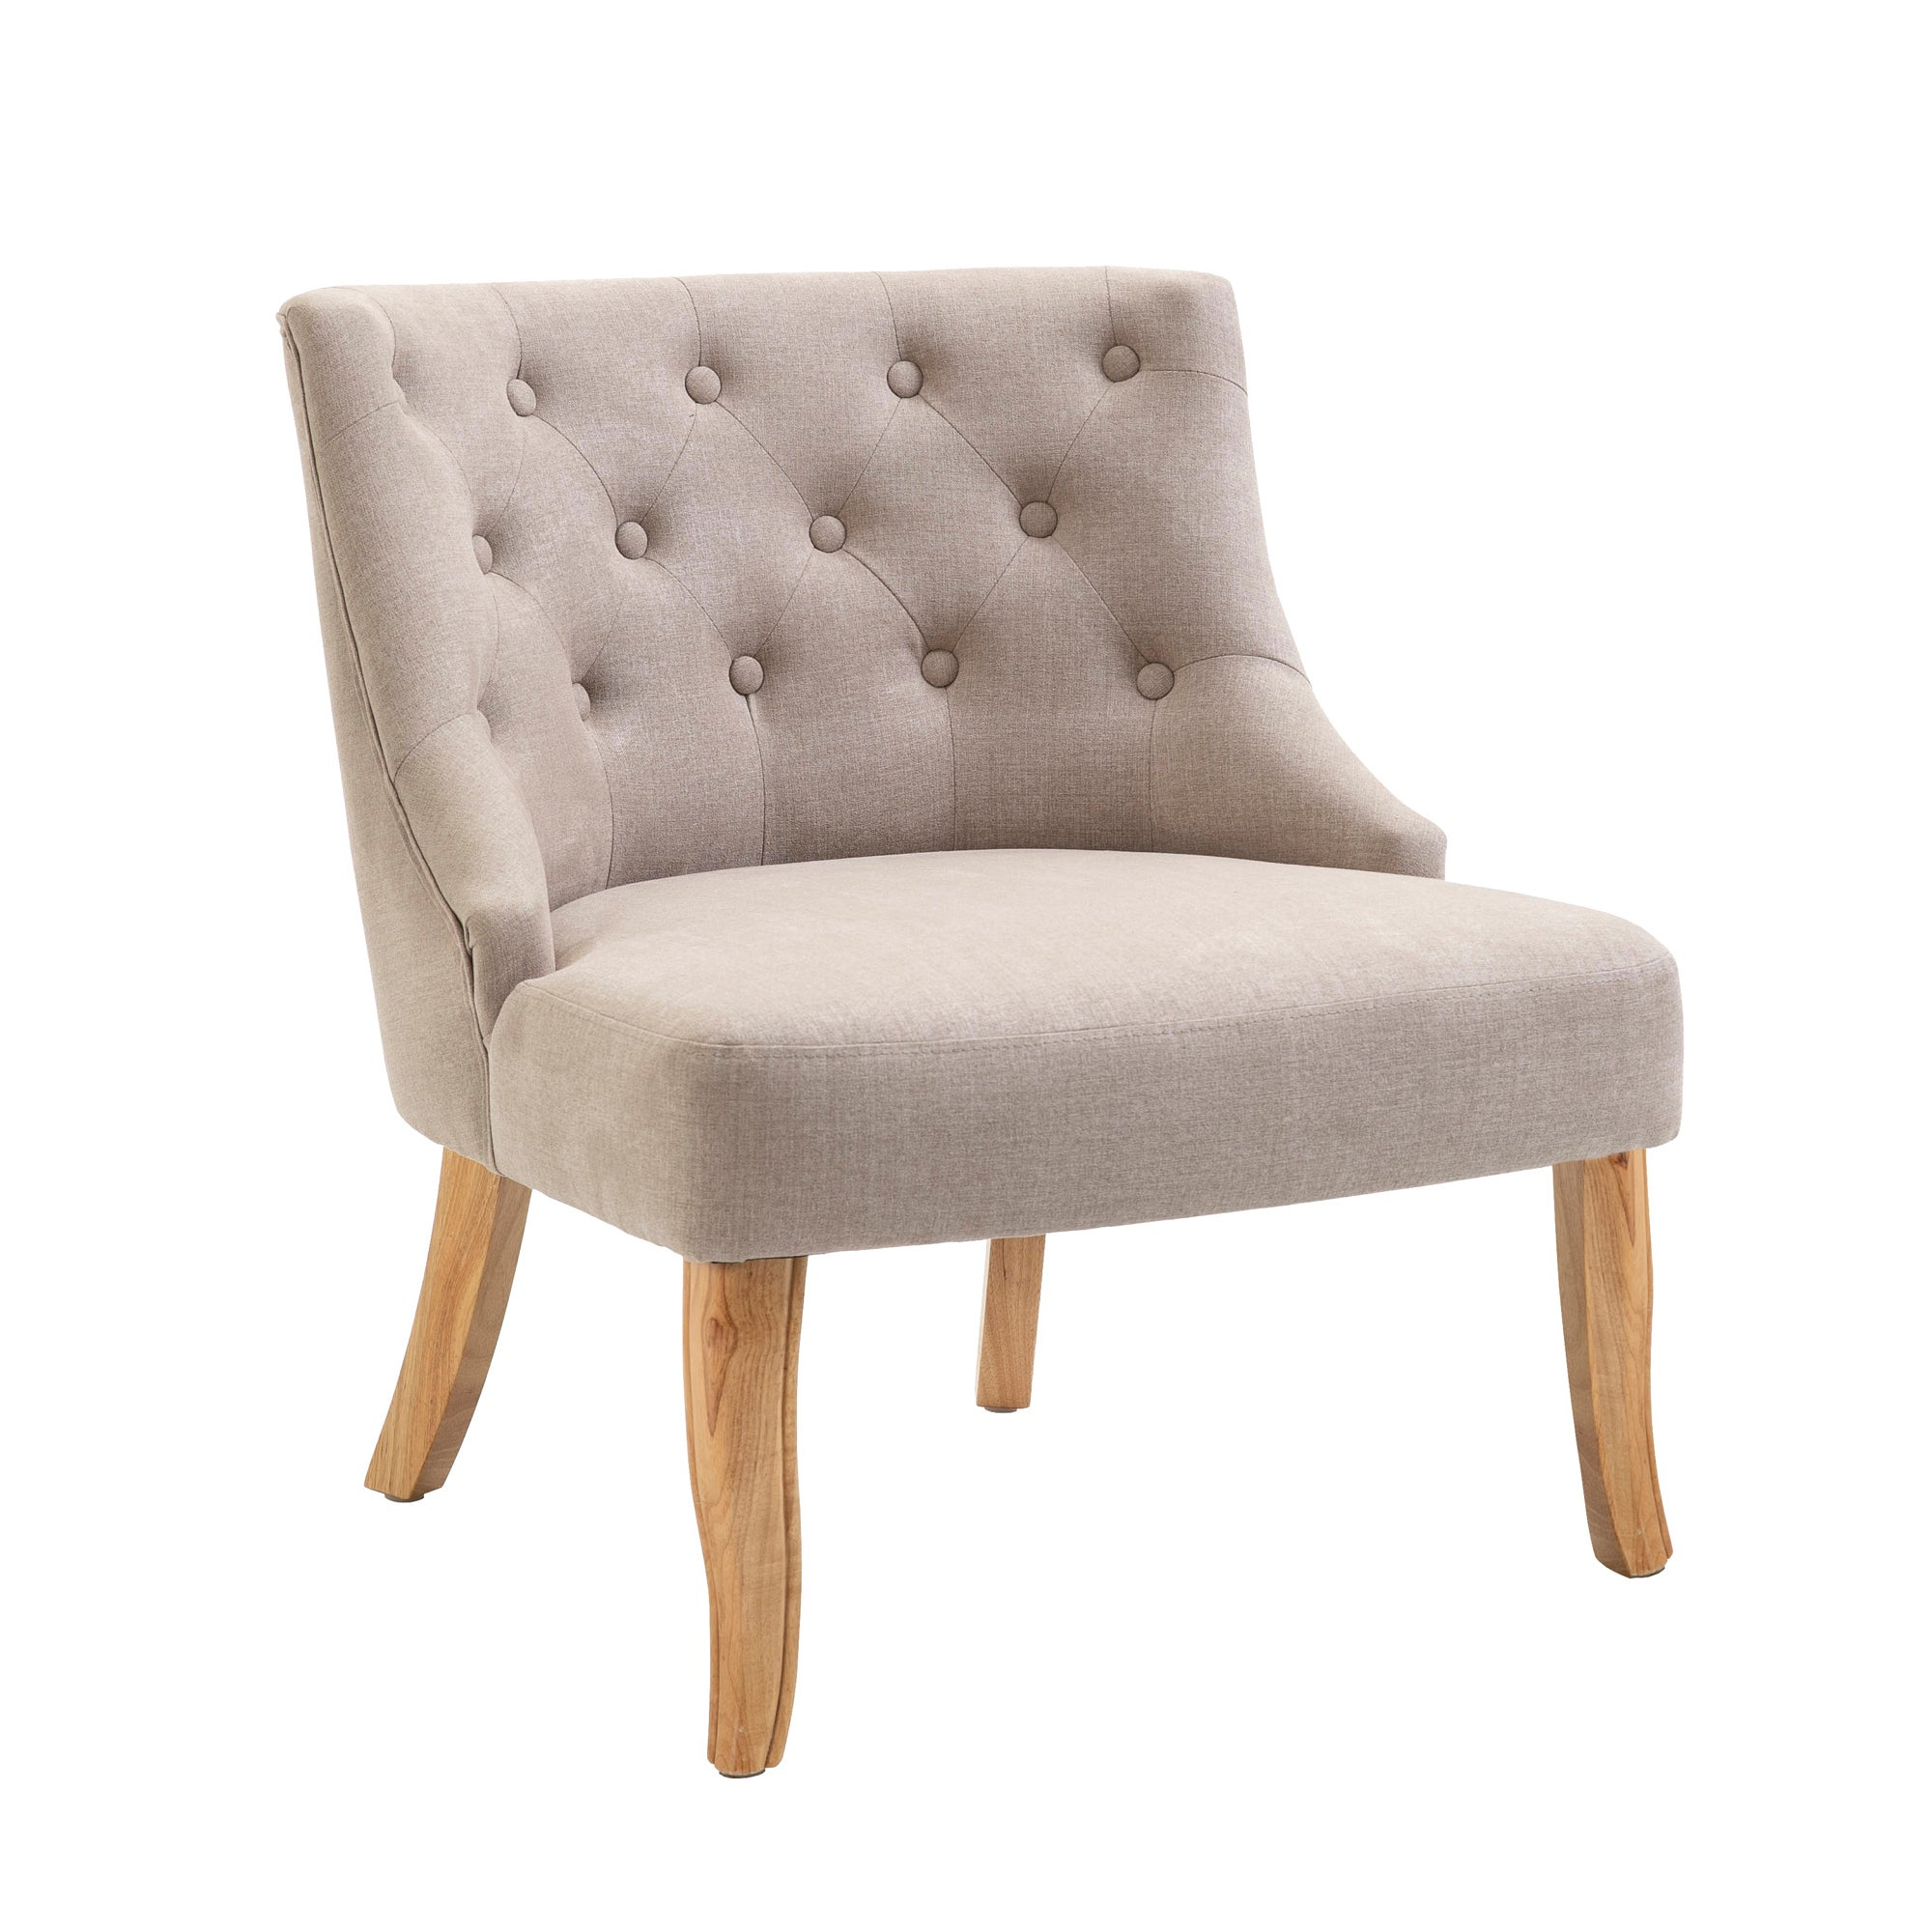 Cream Antoinette Chair